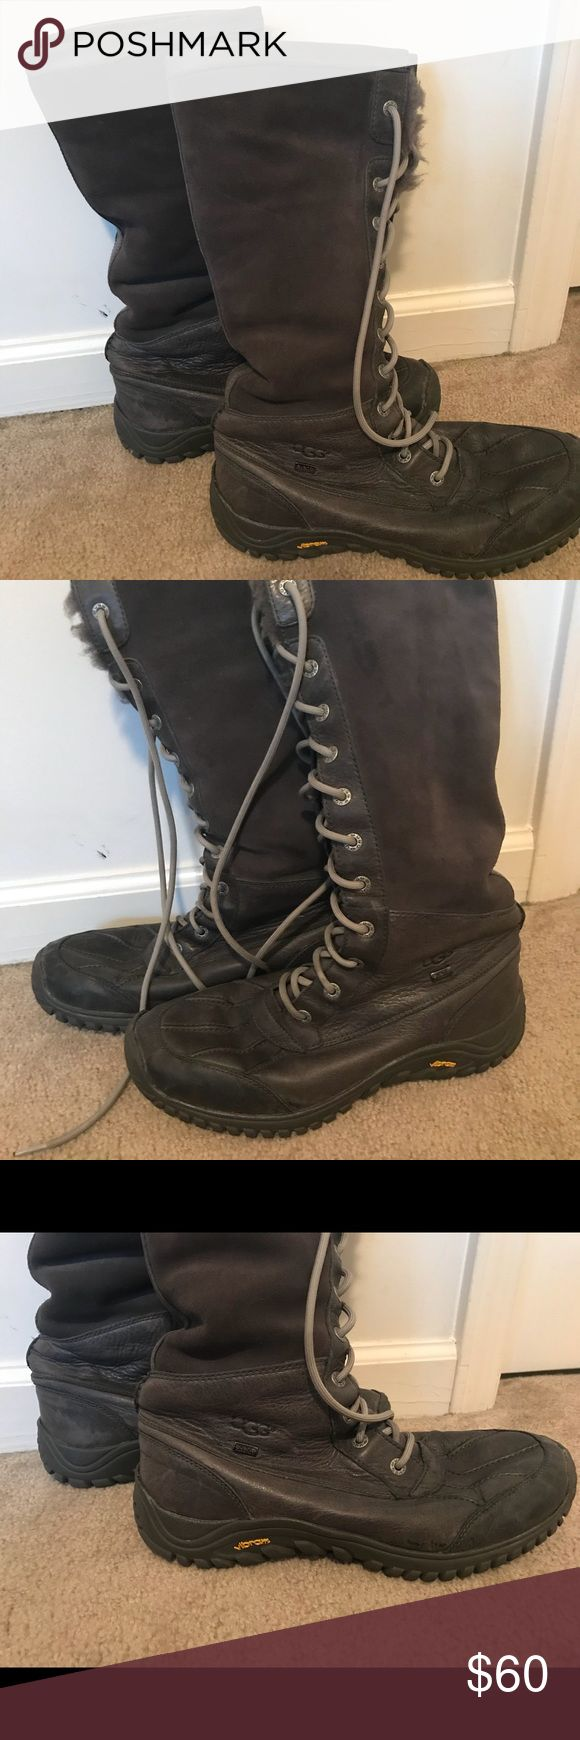 Uggs Adirondack Tall Boots Nice pair with normal wear but lots of wear left. Check out the very gently used replacement foot insert. UGG Shoes Winter & Rain Boots